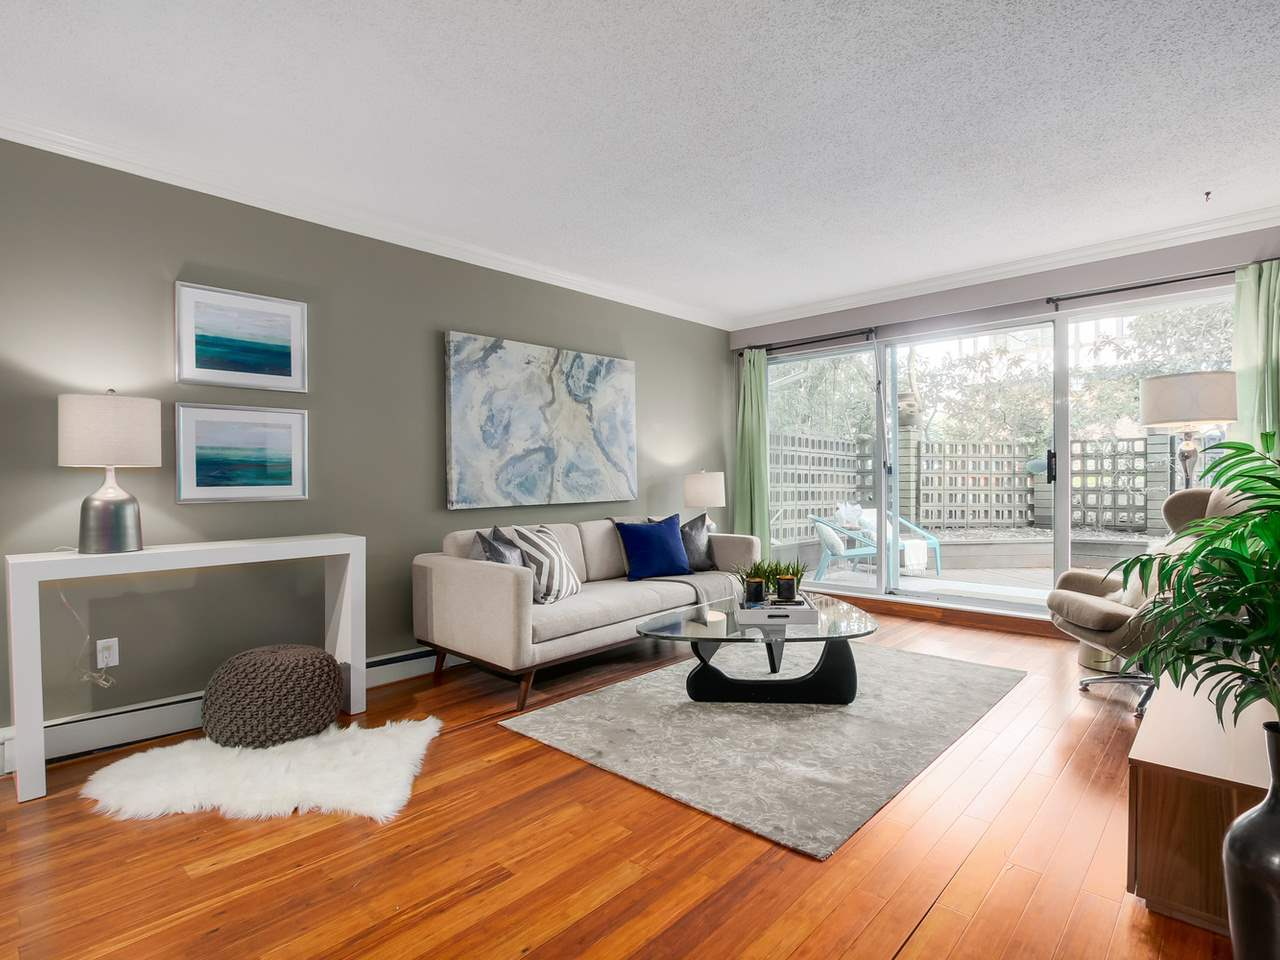 Photo 2: 103 1412 W 14TH Avenue in Vancouver: Fairview VW Condo for sale (Vancouver West)  : MLS® # R2048701